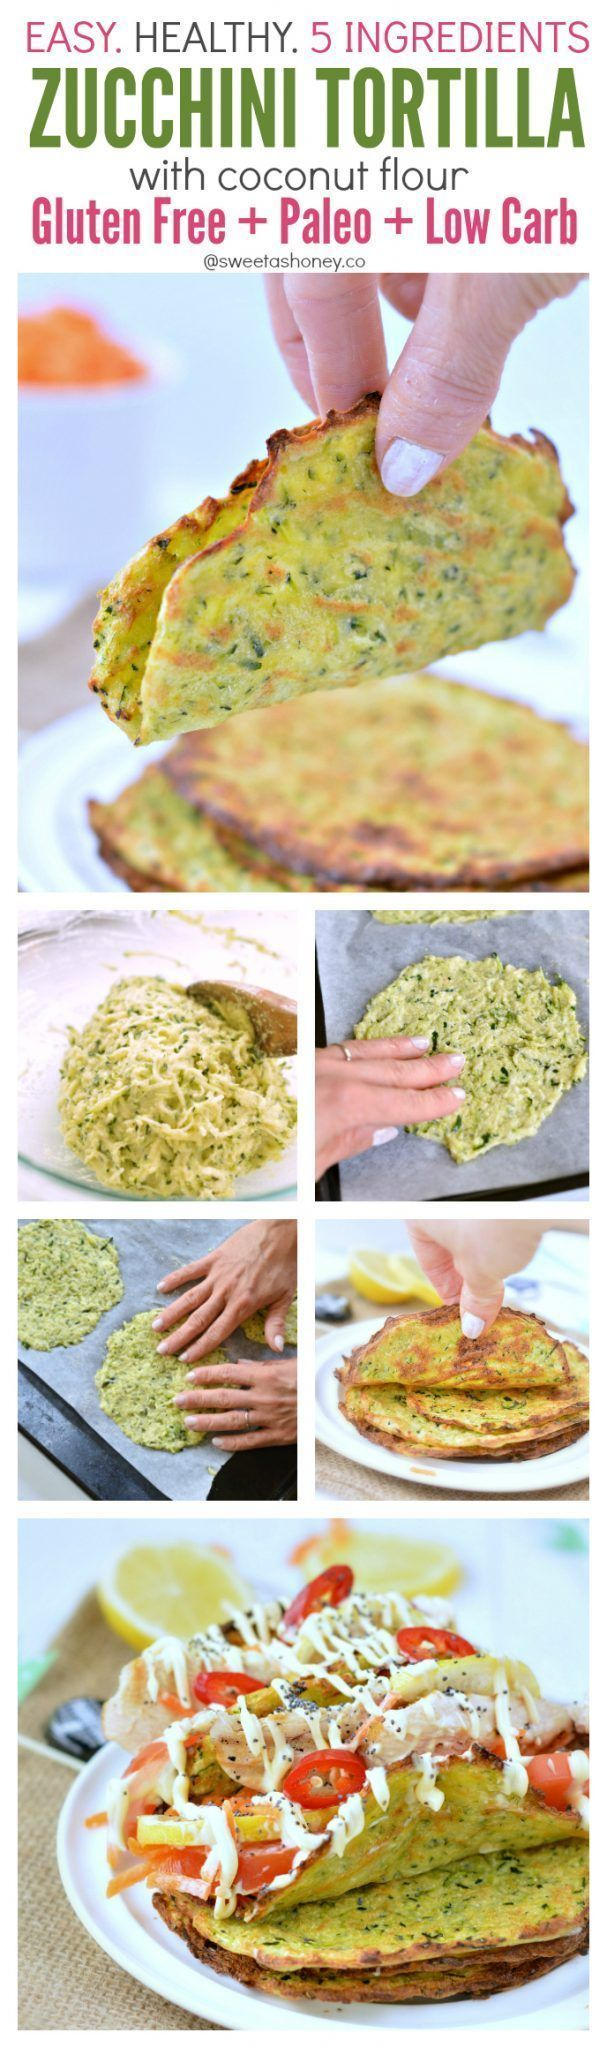 Homemade tortillas made with grated zucchini and coconut flour. An healthy tortillas to boost your 5 a day intake! Low carb, clean eating tortilla recipe.